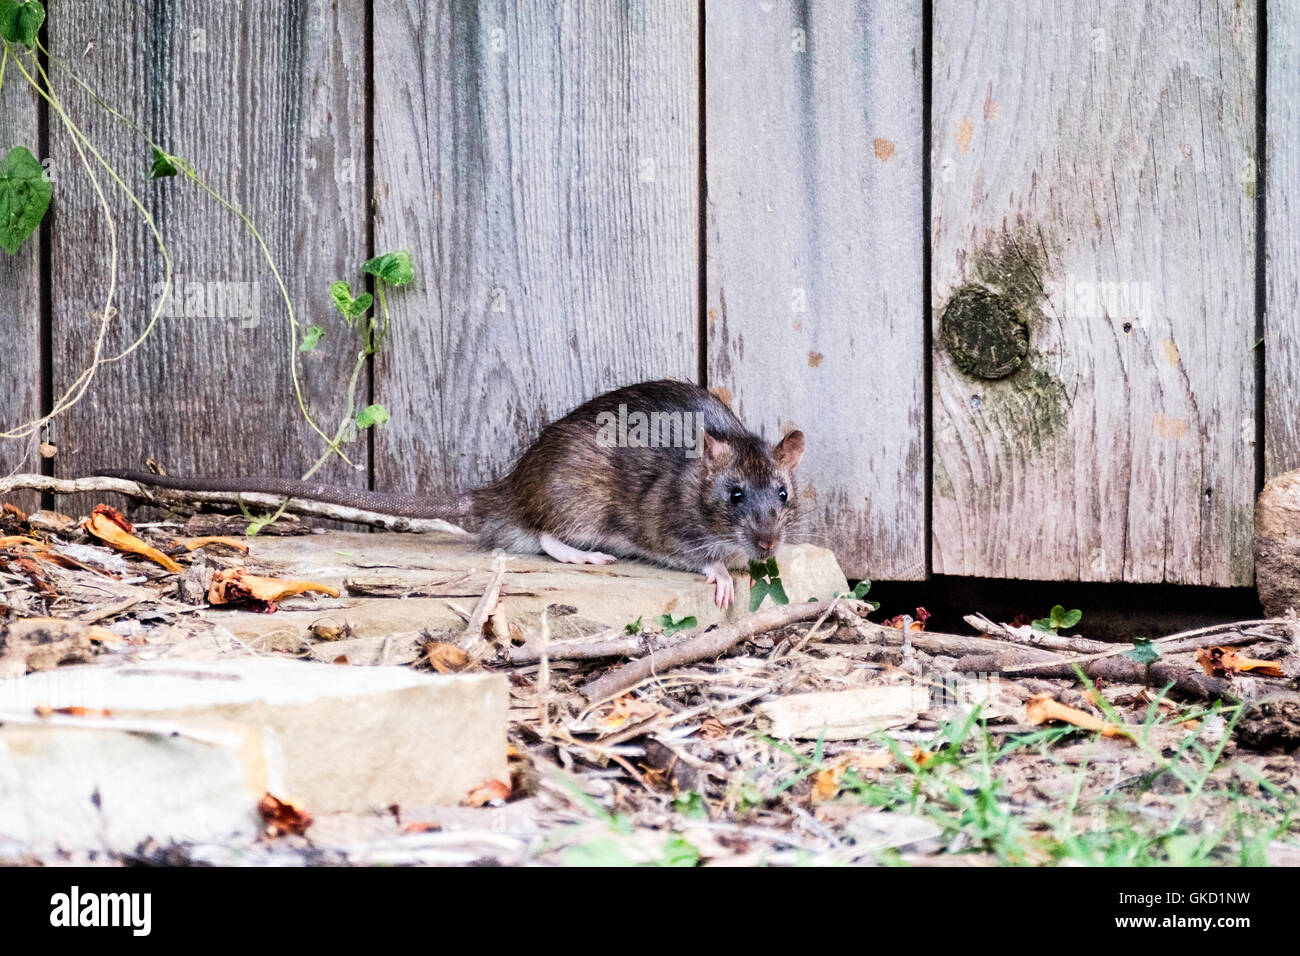 A pack rat, Neotoma, found in Oklahoma City, with habits of stealing sunflower seeds under a bird feeder. Oklahoma,USA. - Stock Image